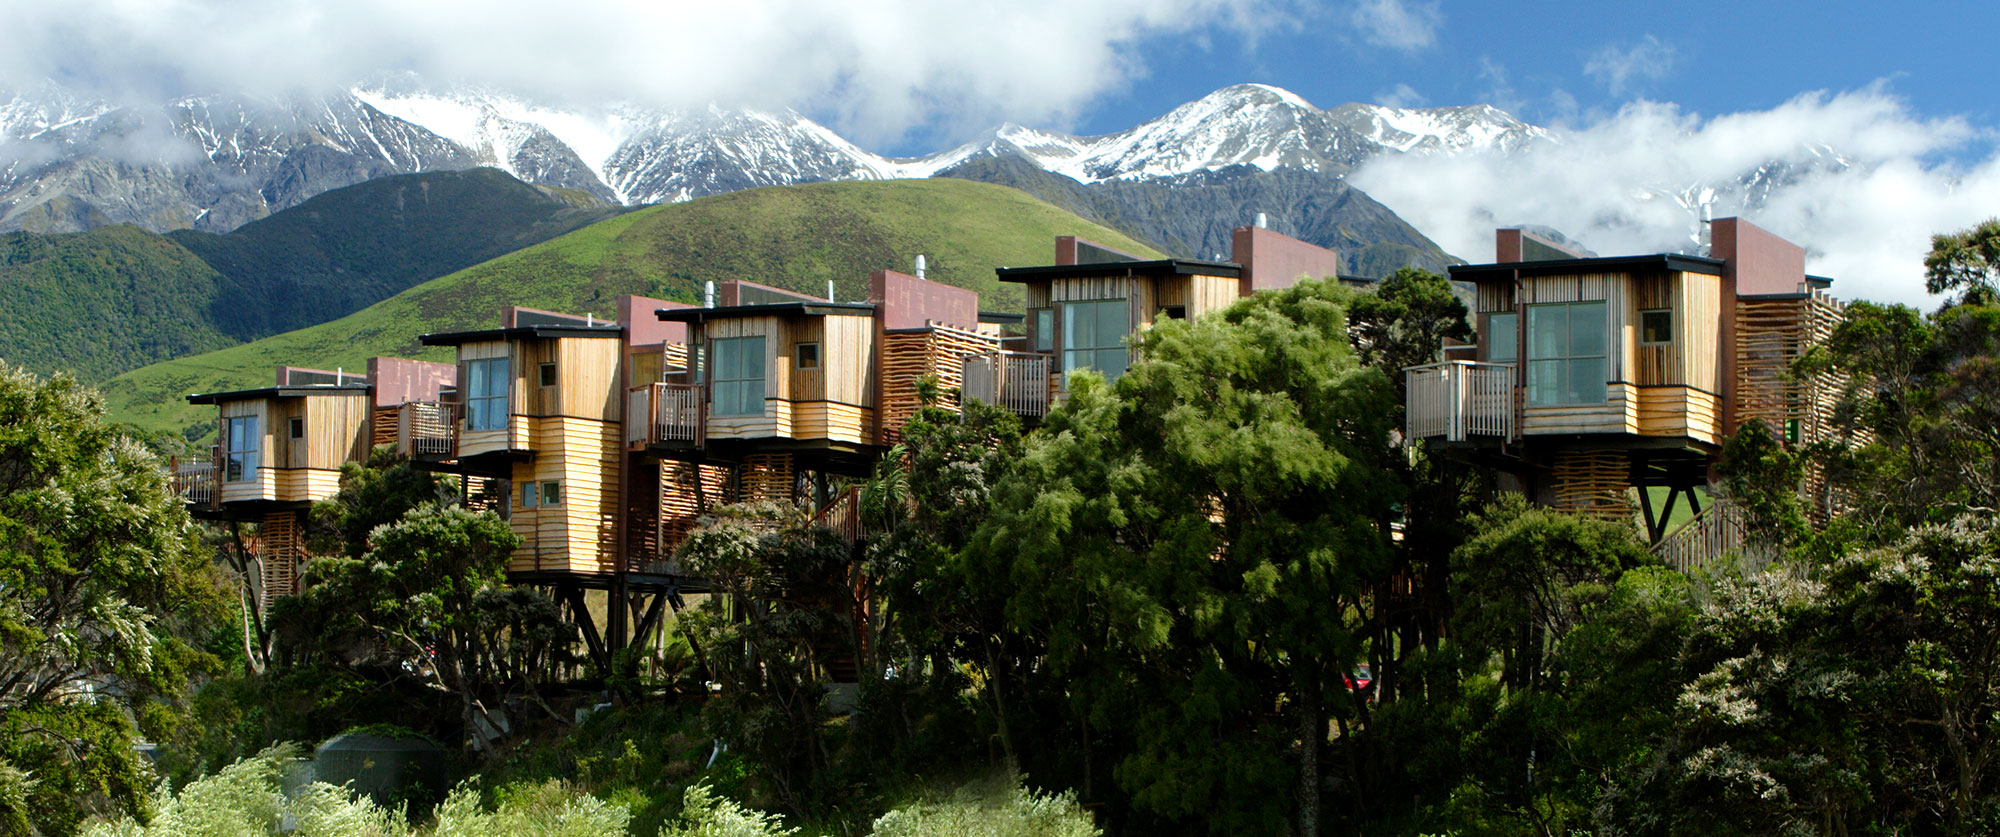 Indulgent Escape: New Zealand Luxury Vacation - Hapuku Lodge Luxury Treehouses